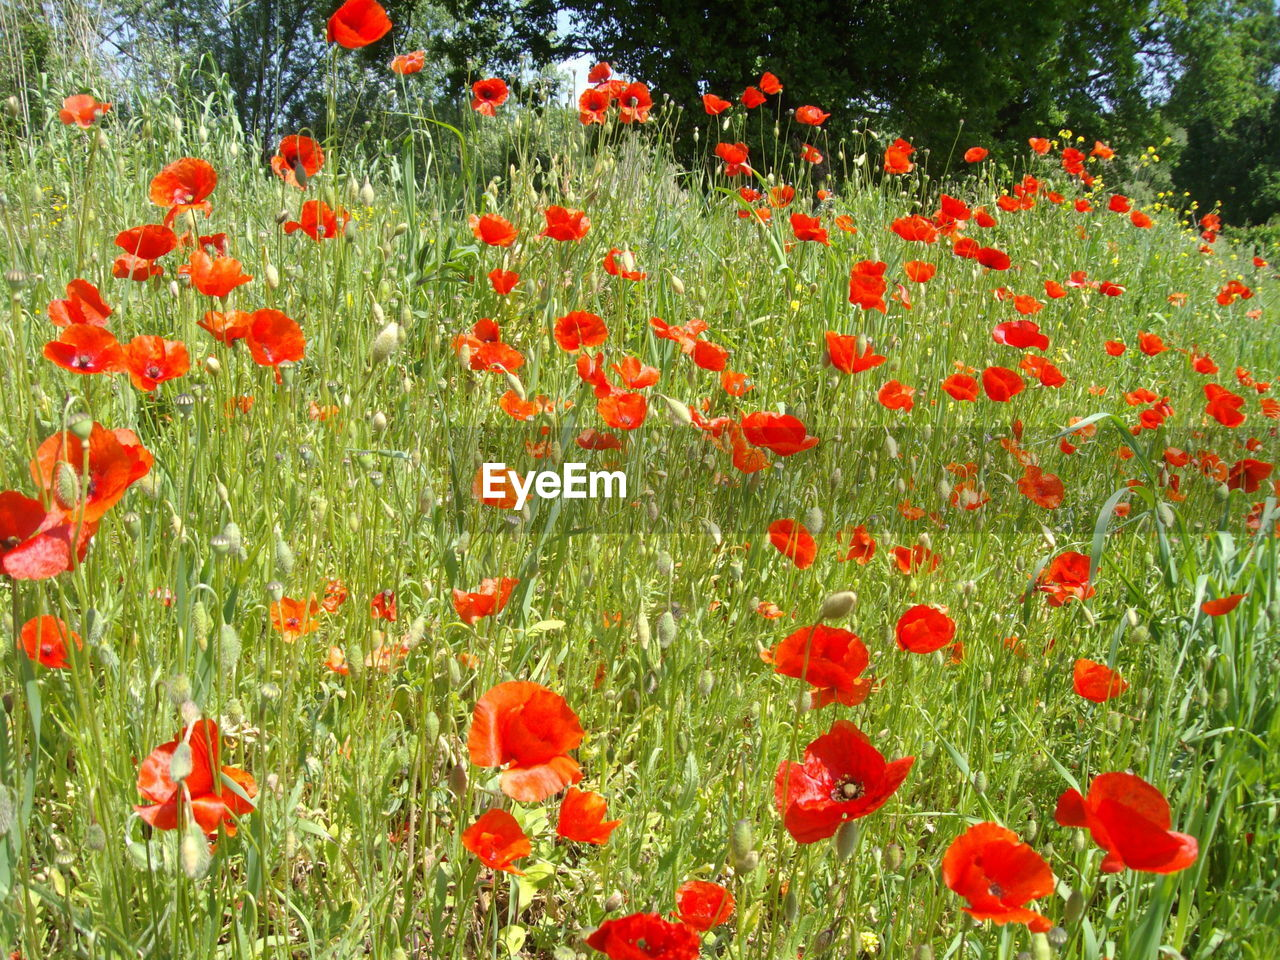 nature, flower, growth, poppy, red, beauty in nature, field, plant, grass, freshness, petal, day, summer, fragility, outdoors, no people, blooming, flower head, close-up